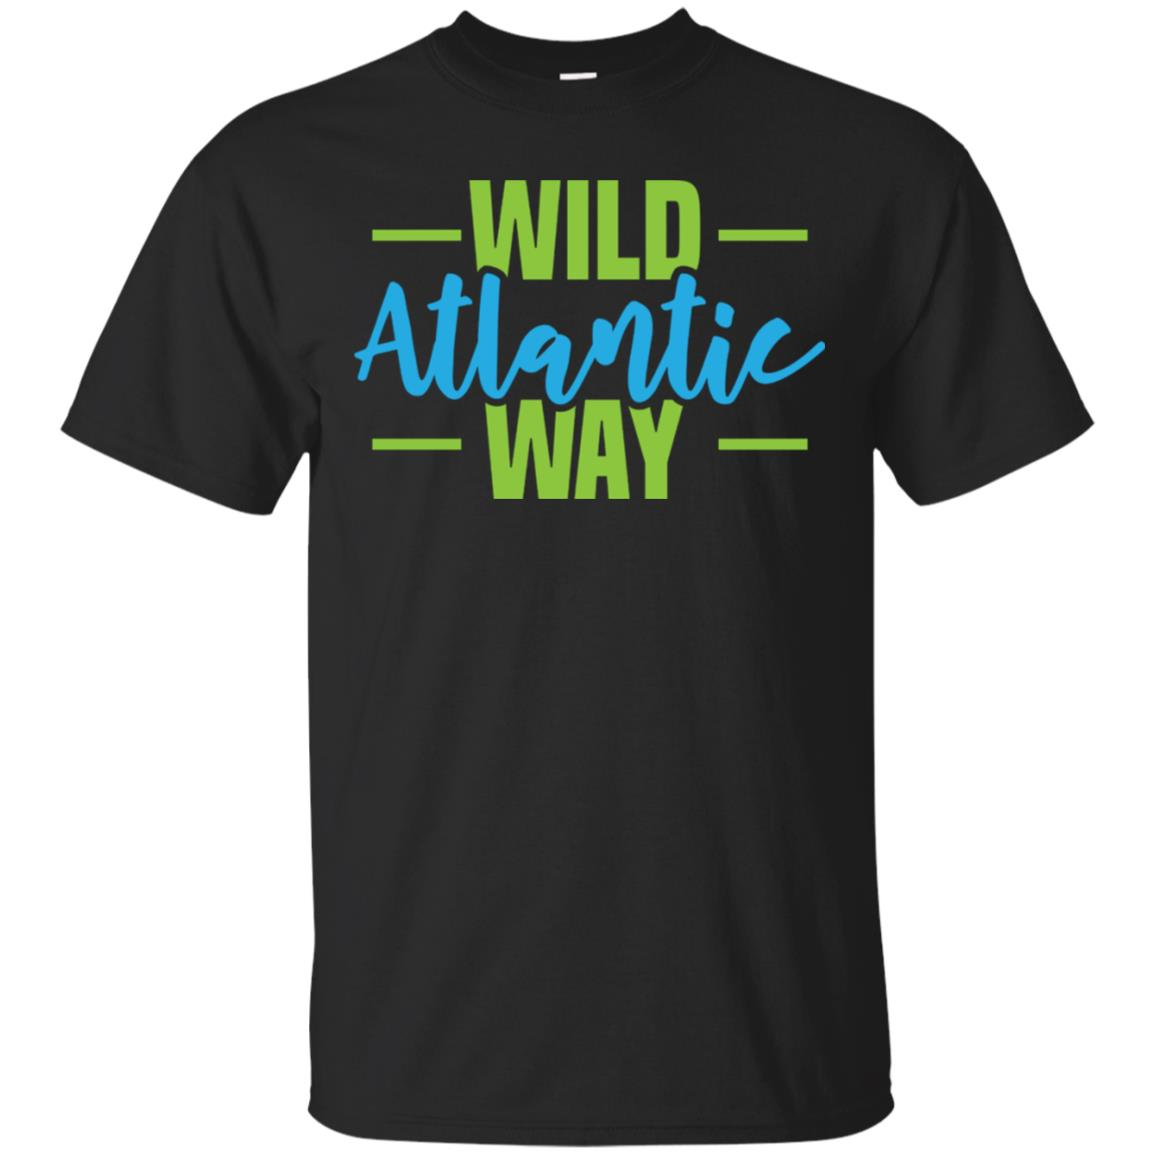 Wild Atlantic Way West of Ireland T-Shirt 99promocode